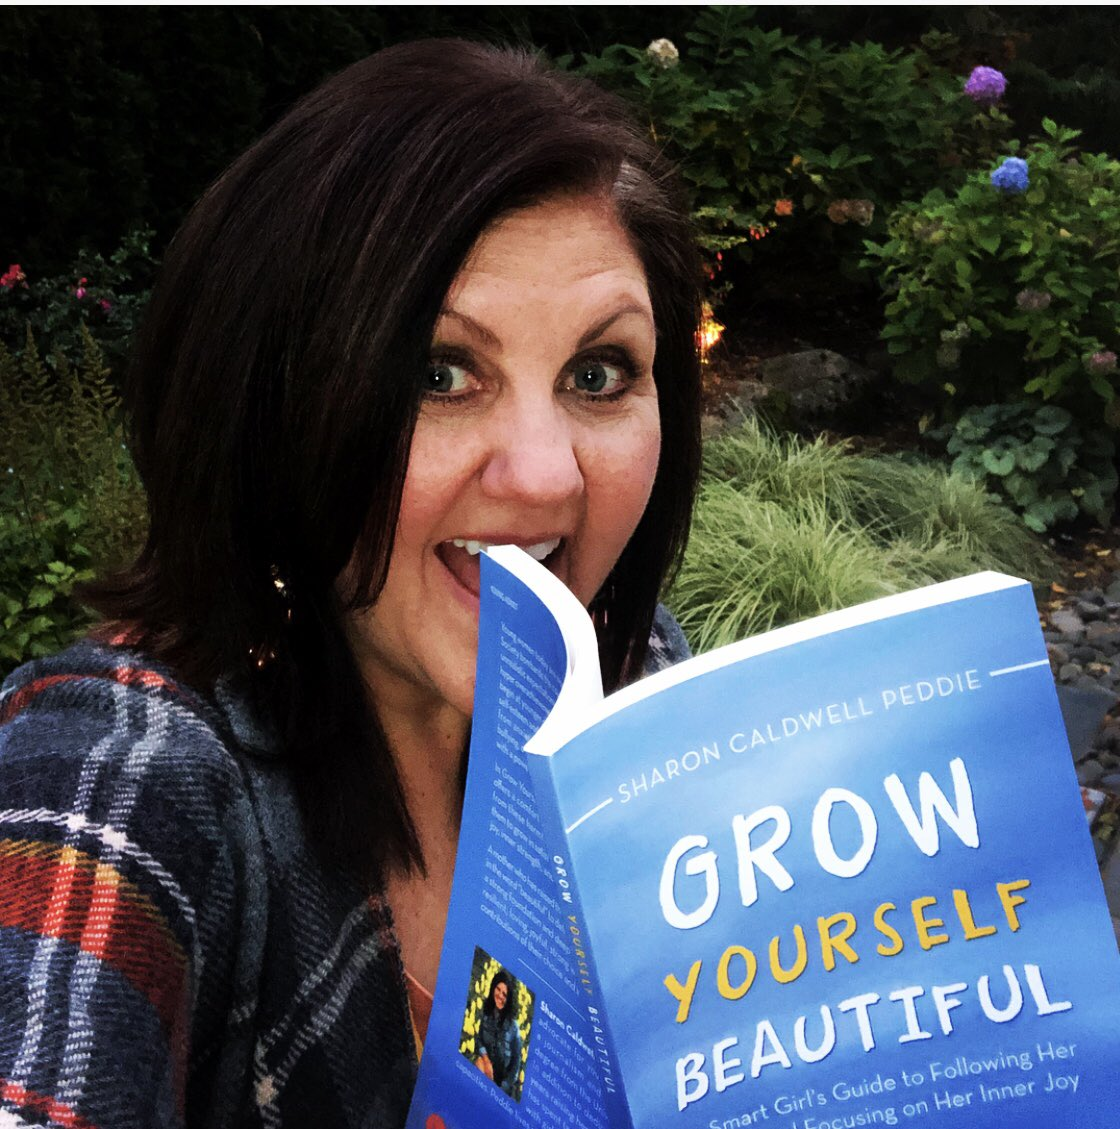 My #book #growyourselfbeautiful is here! My book will help #empower #youngwomen to follow their #heart and #grow their #innerjoy and #selflove-moving focus from today's pressures that cause them so much #stress Book Available now: #iuniverse #amazon #barnesandnoble